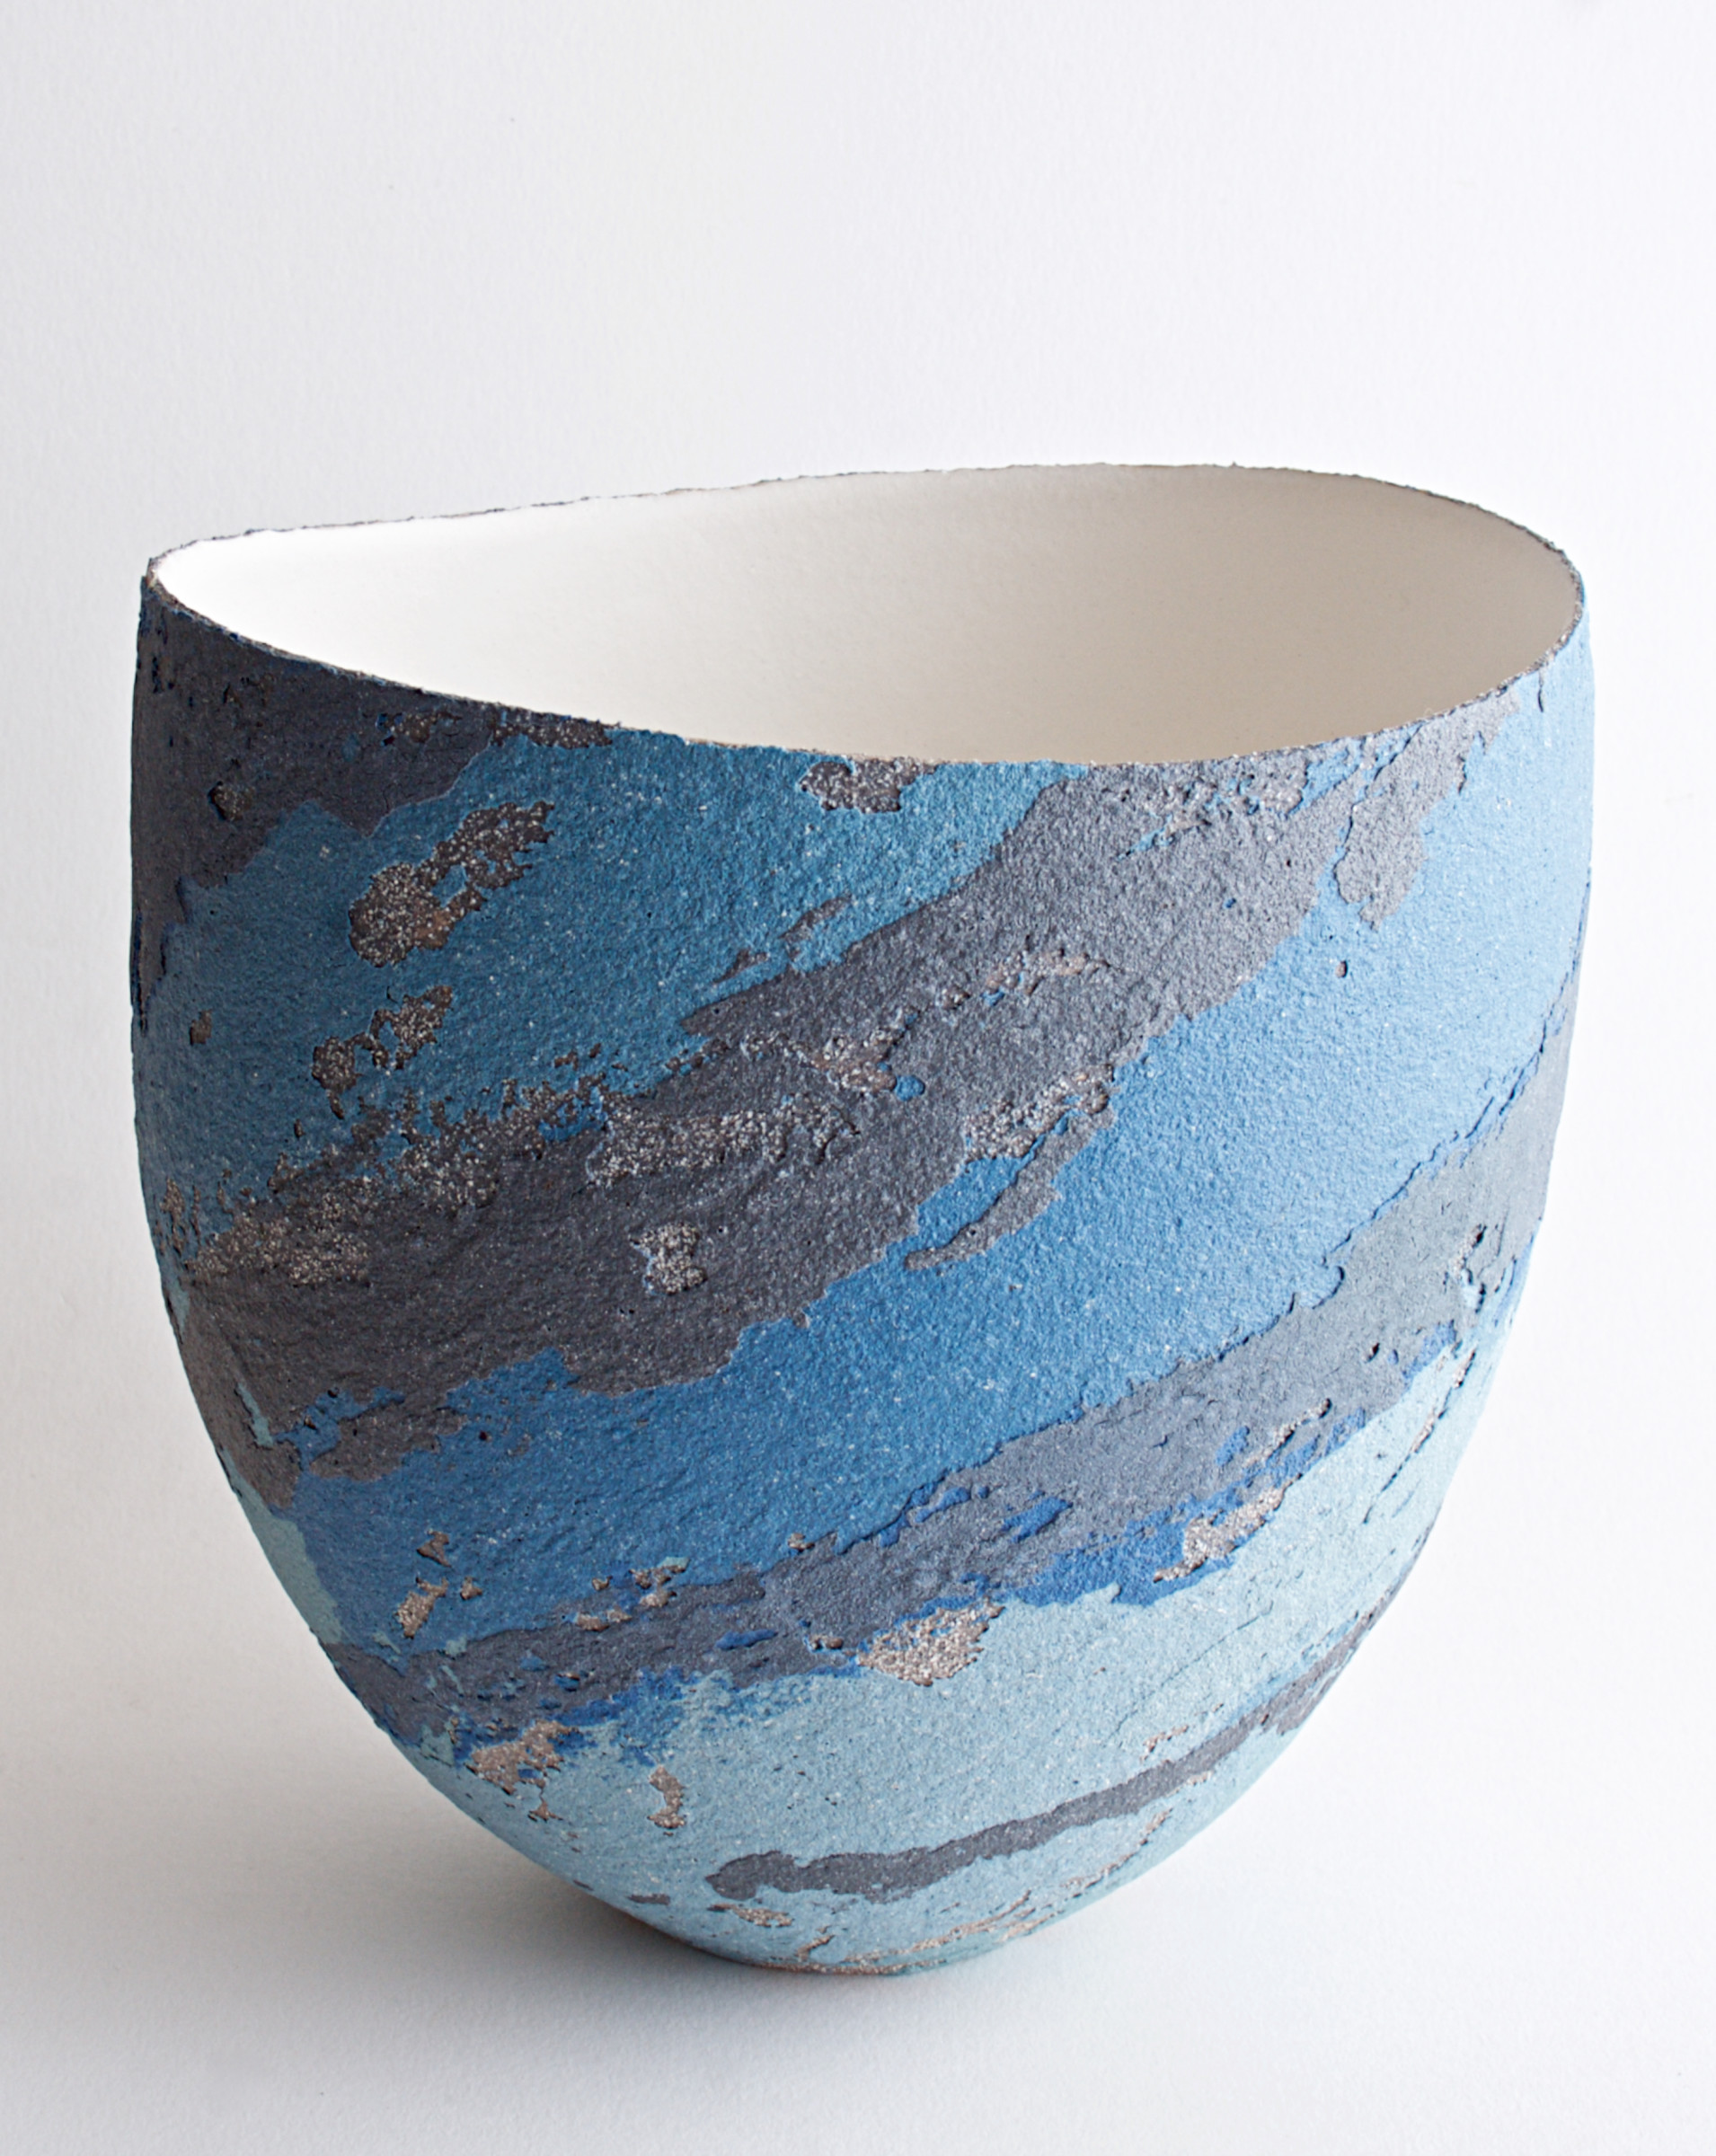 "<span class=""link fancybox-details-link""><a href=""/artists/79-clare-conrad/works/6935-clare-conrad-vessel-scooped-rim-2020/"">View Detail Page</a></span><div class=""artist""><strong>Clare Conrad</strong></div> <div class=""title""><em>Vessel, scooped rim</em>, 2020</div> <div class=""medium"">Stoneware</div> <div class=""dimensions"">h. 18 cm </div><div class=""price"">£385.00</div><div class=""copyright_line"">Copyright The Artist</div>"